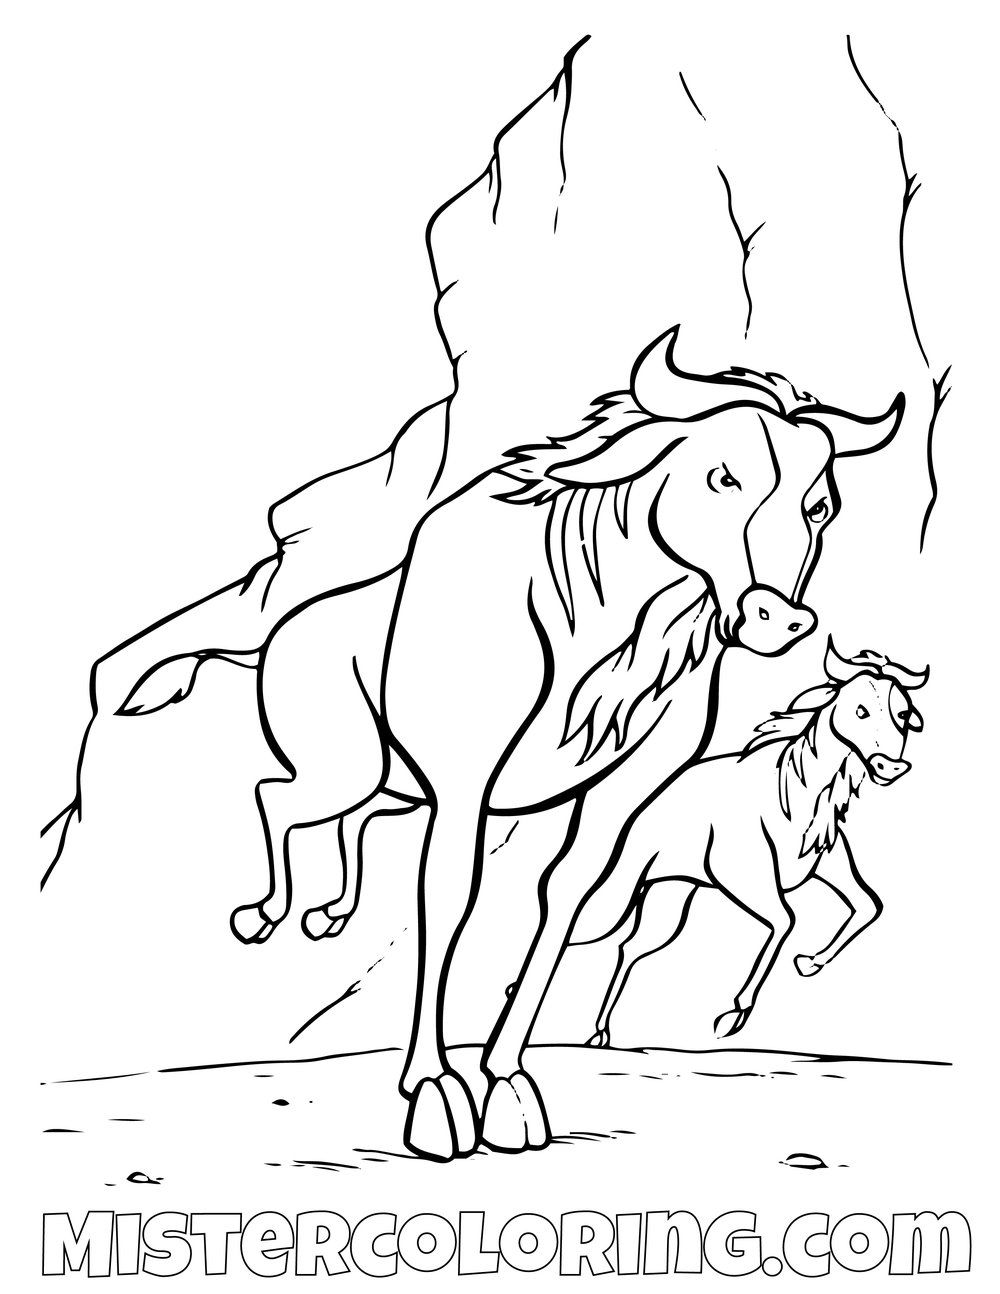 wildebeest the lion coloring fairy angel color by number sheets polar bear cowgirl clear coloring pages Wildebeest Coloring Page